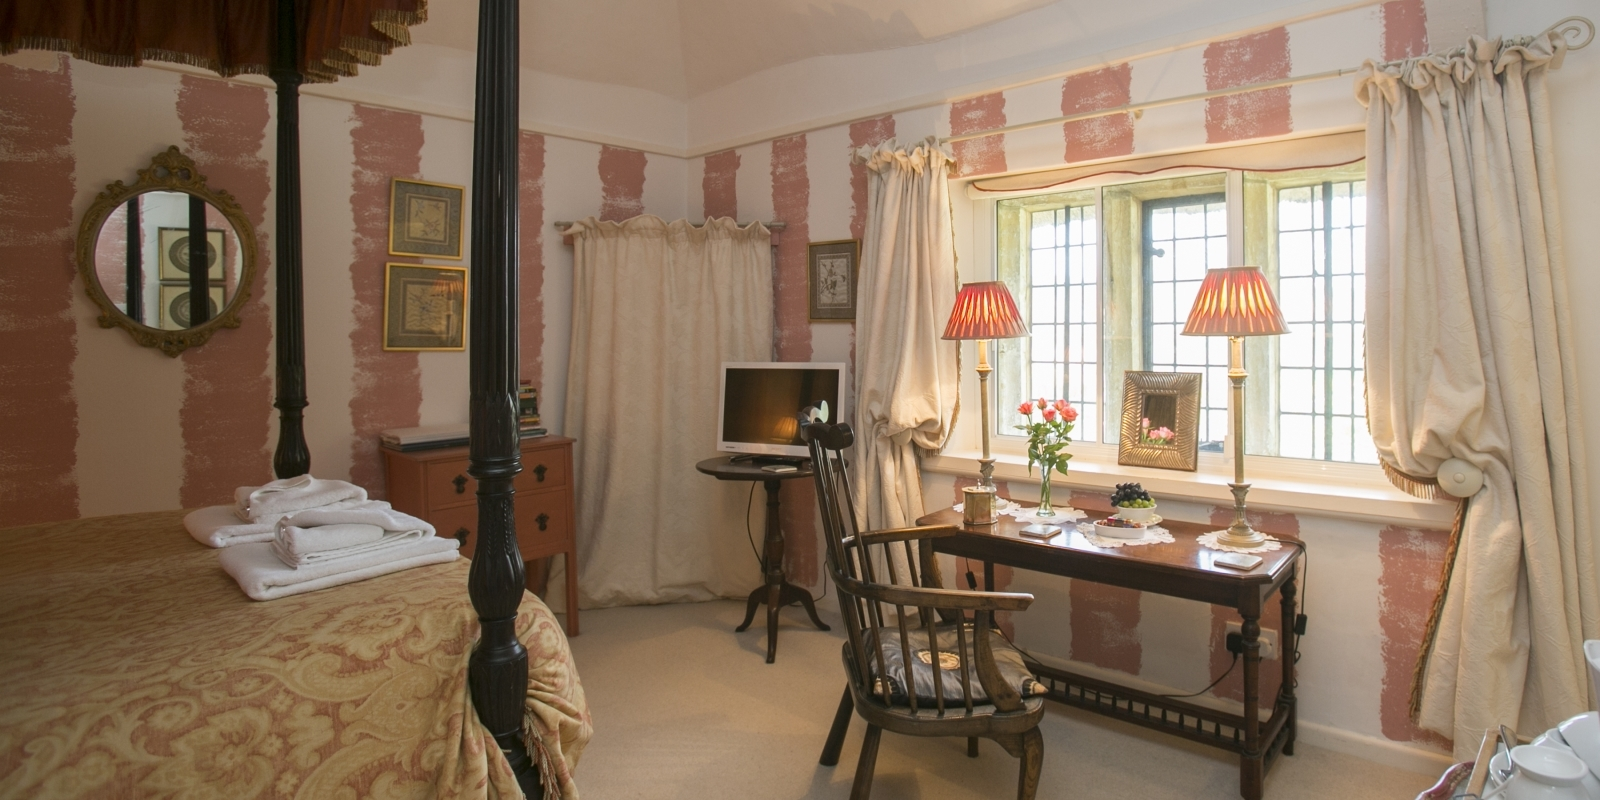 Four-poster bedroom at Tudor Cottage Guest House Dorchester